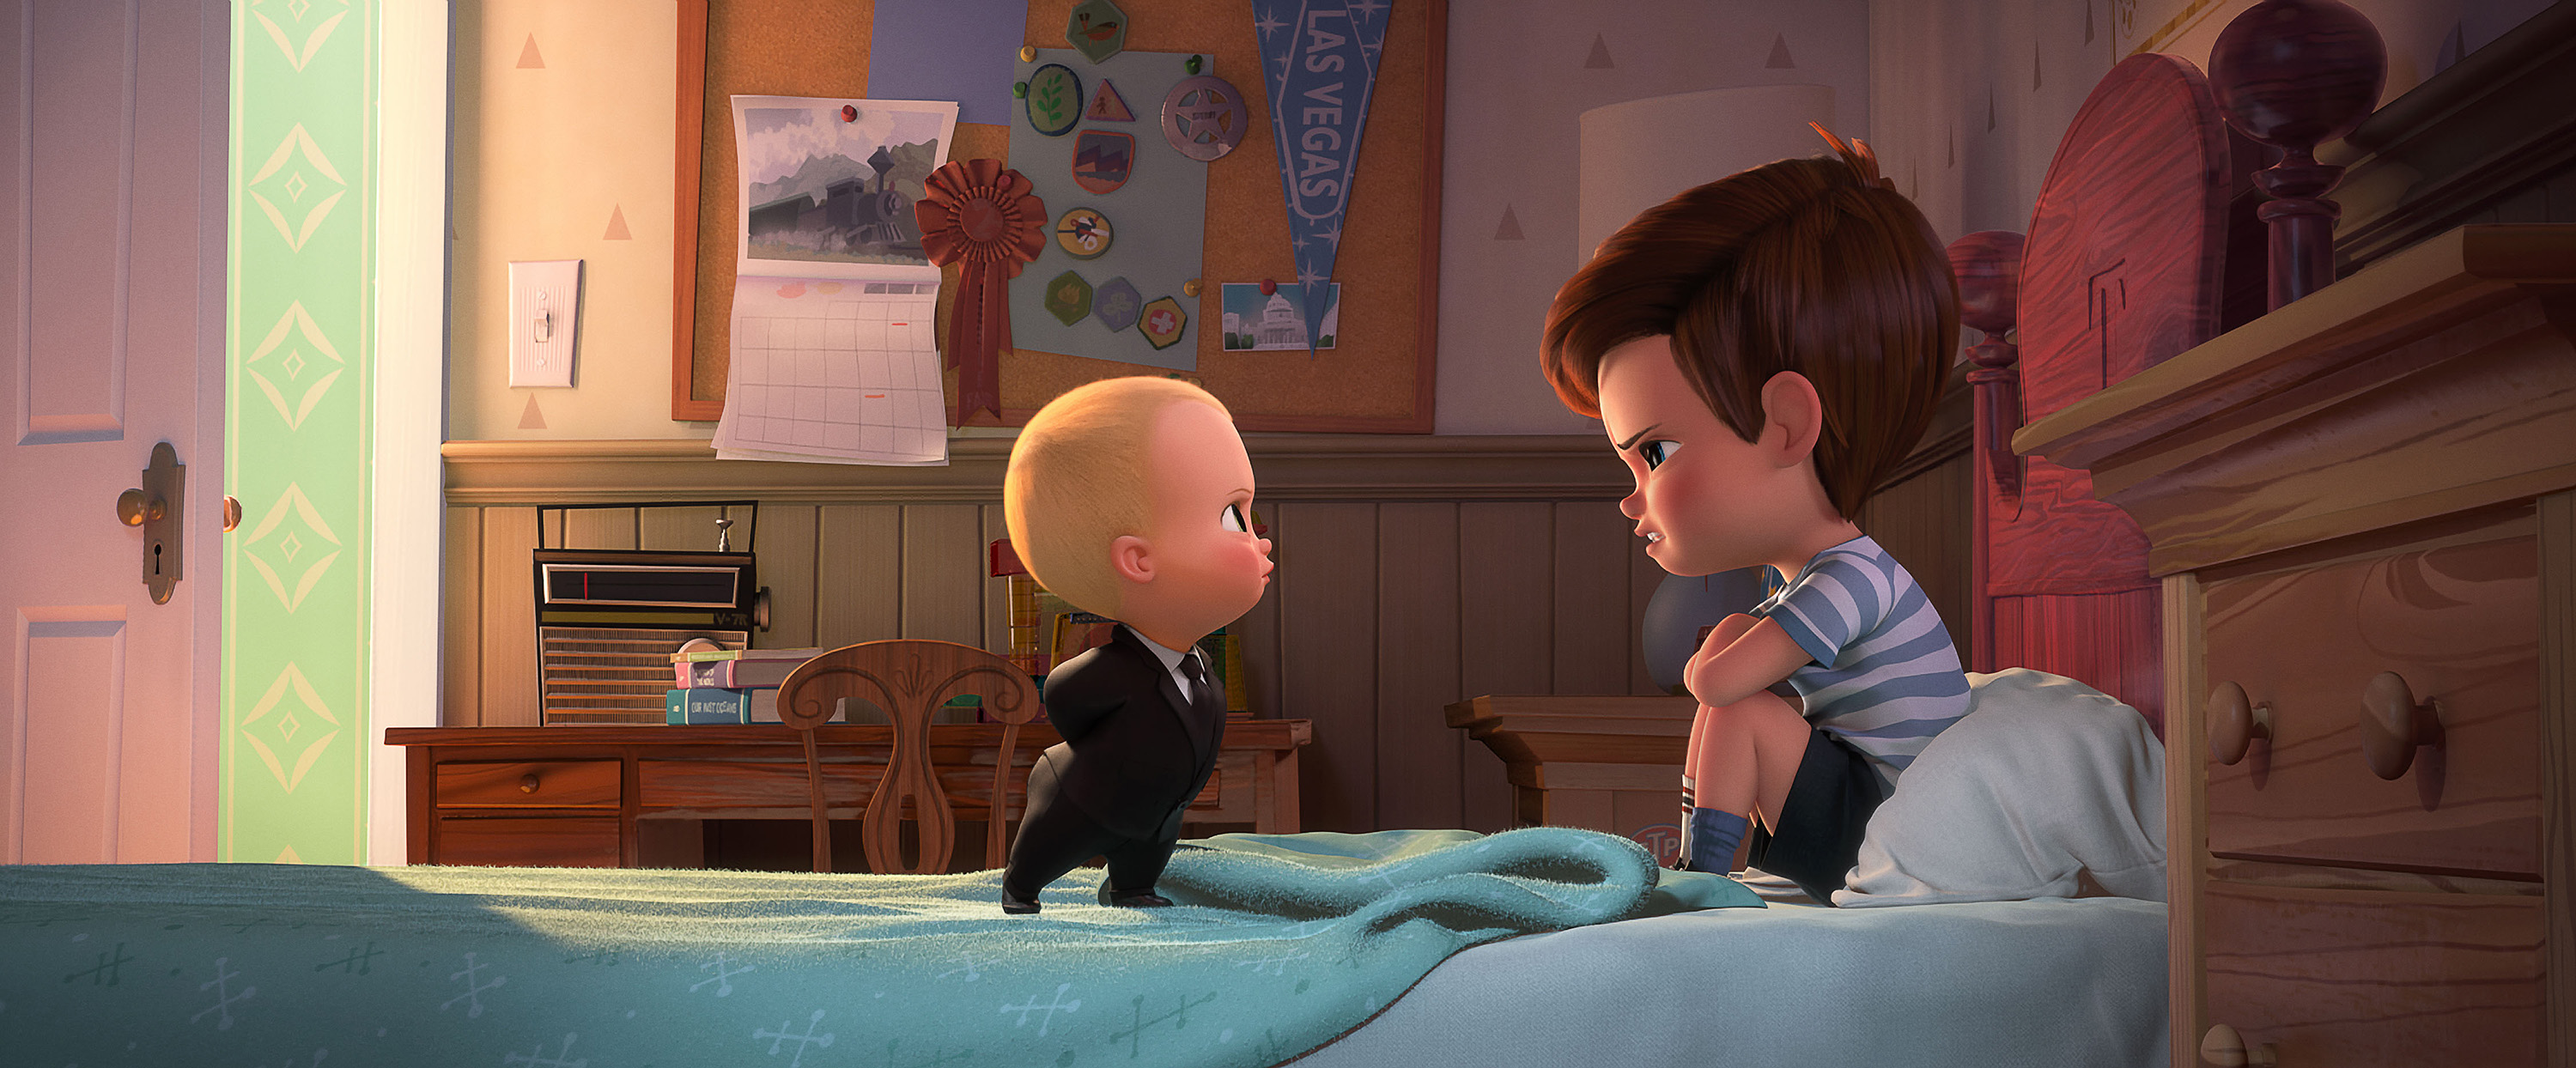 From left, Boss Baby, voiced by Alec Baldwin, tries to convince Tim, voiced by Miles Bakshi, that they must cooperate in DreamWorks Animation's